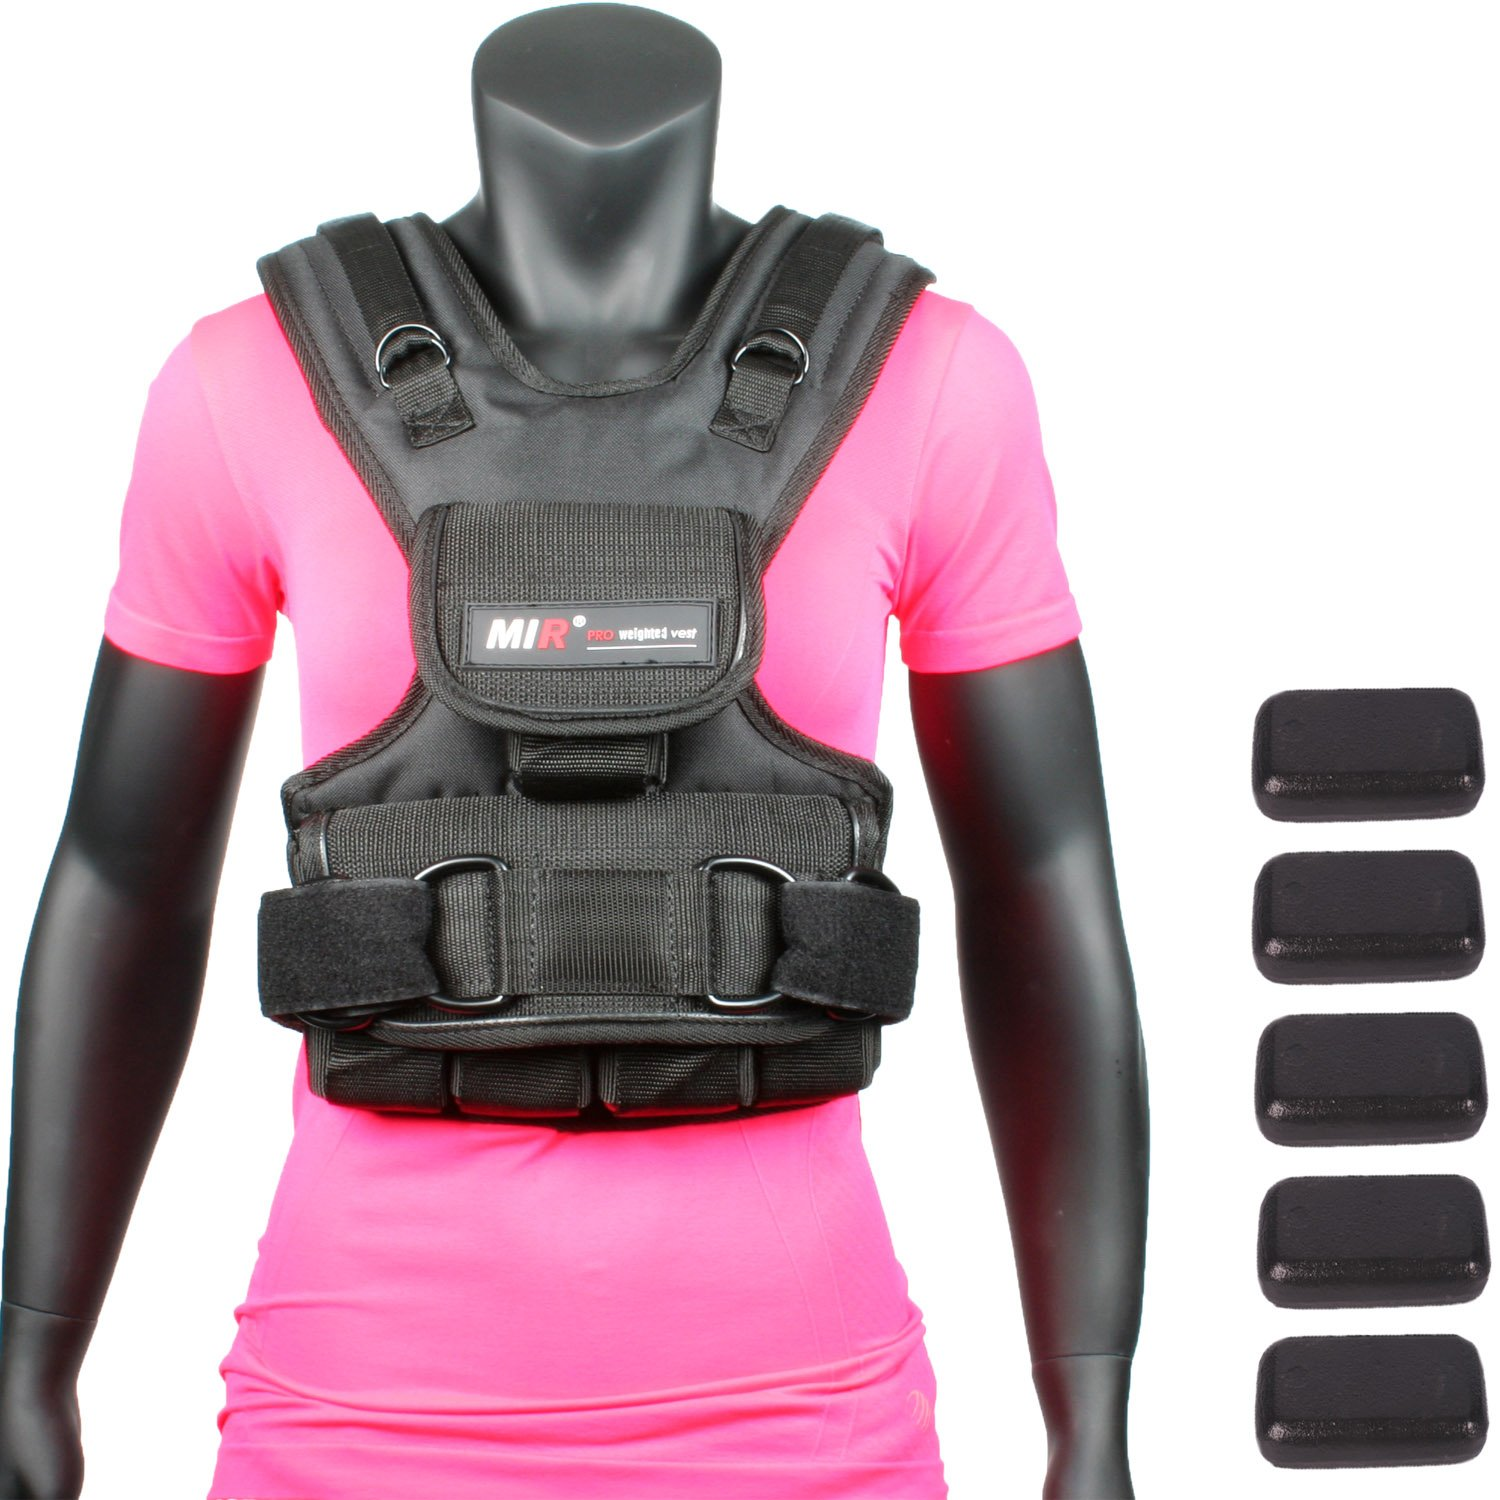 Mir Womens Adjustable Weighted Vest (10lbs - 50lbs) (10)